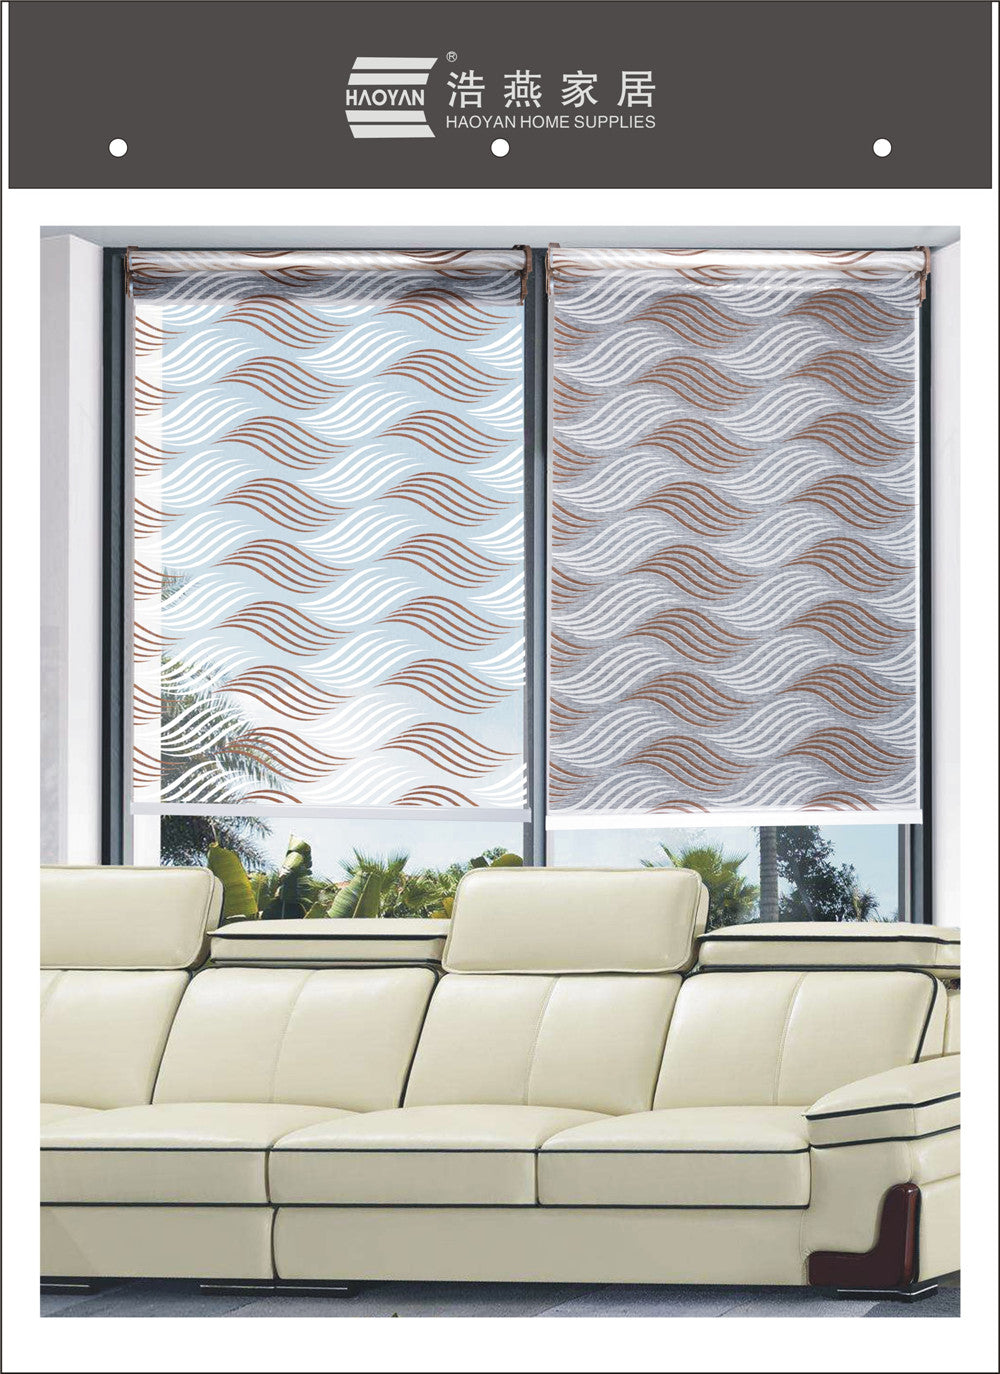 having two layers Custome sized Day and night blinds Double-deck roller Blinds Haoyan 0708